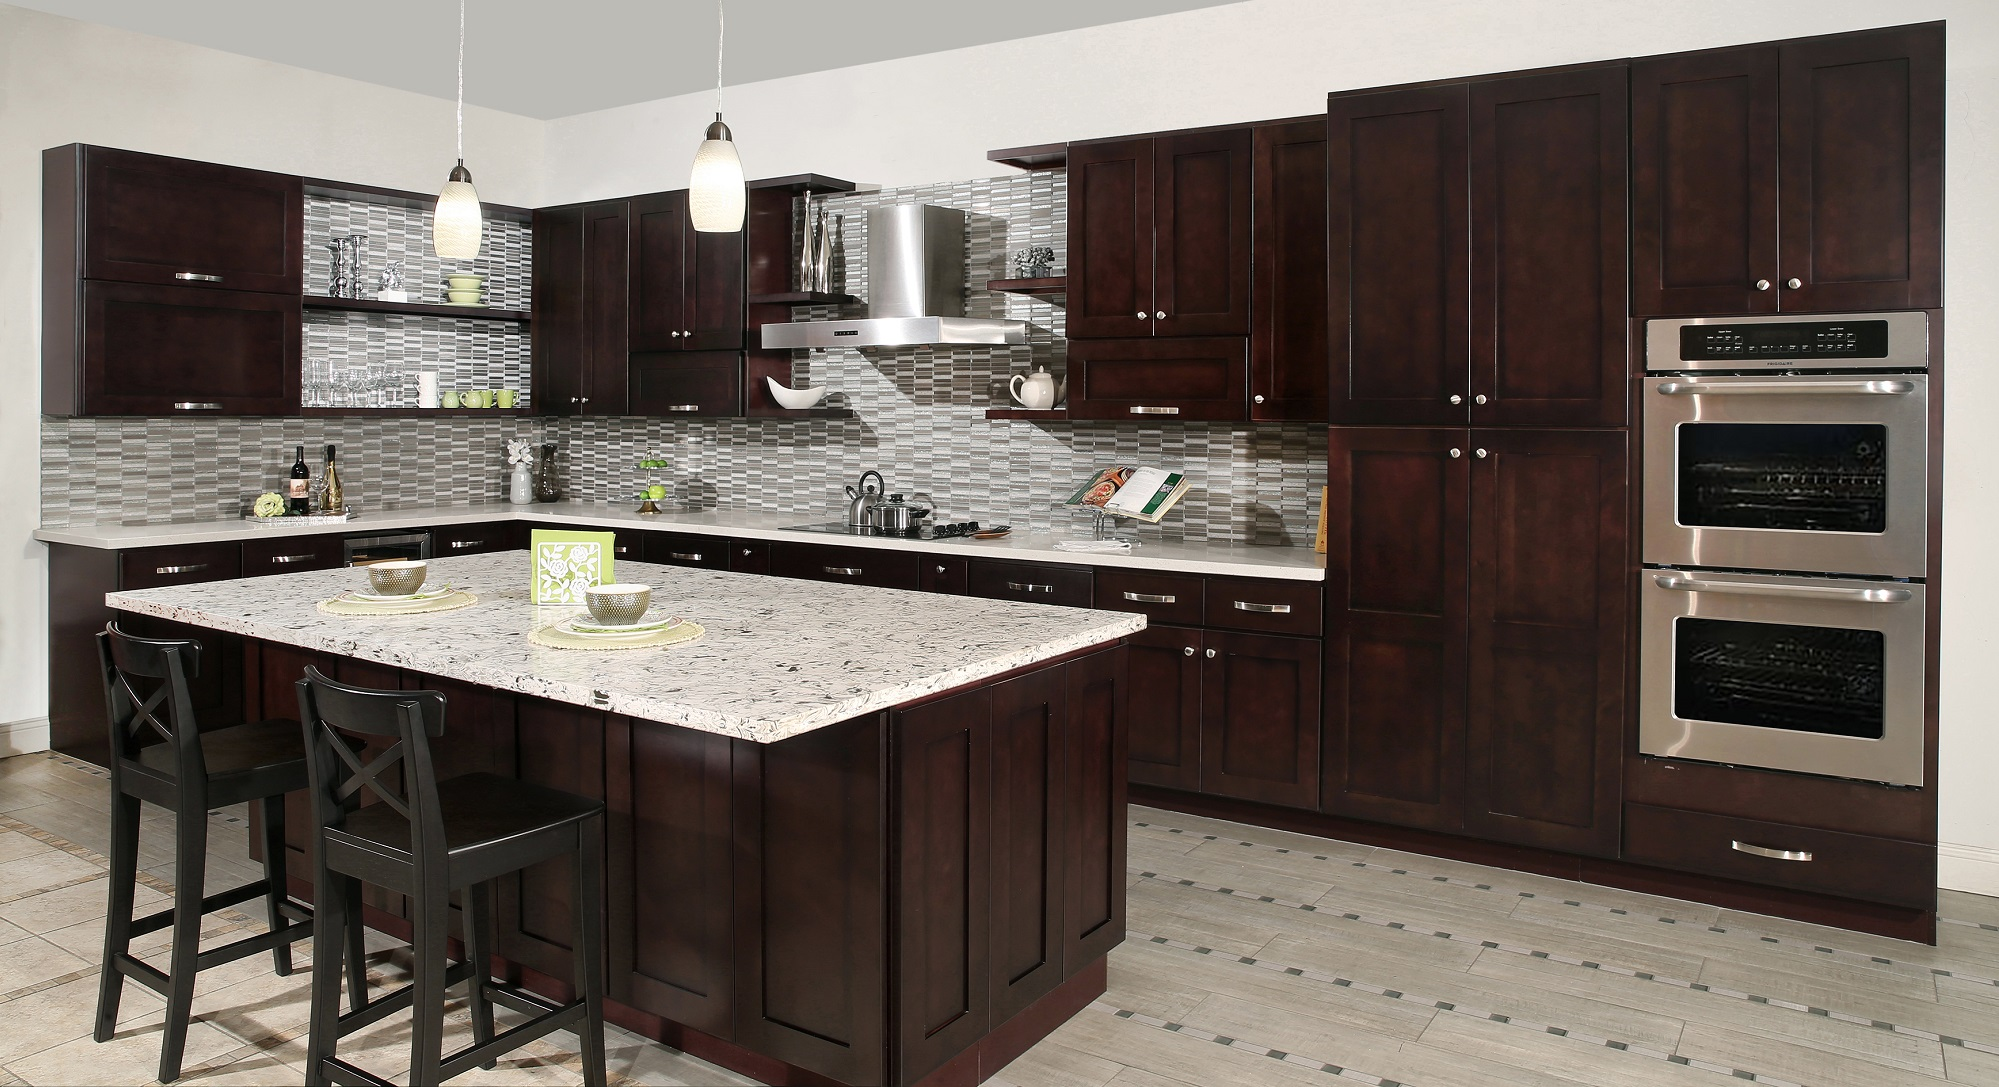 showroom overlay with in euro flair light affordable kitchen doors corner wood concrete cabinet style contemporary garage thumb samples finish diagonal countertop beech standard color accent lower door upper glass appliance microwave reeded custom cabinets and